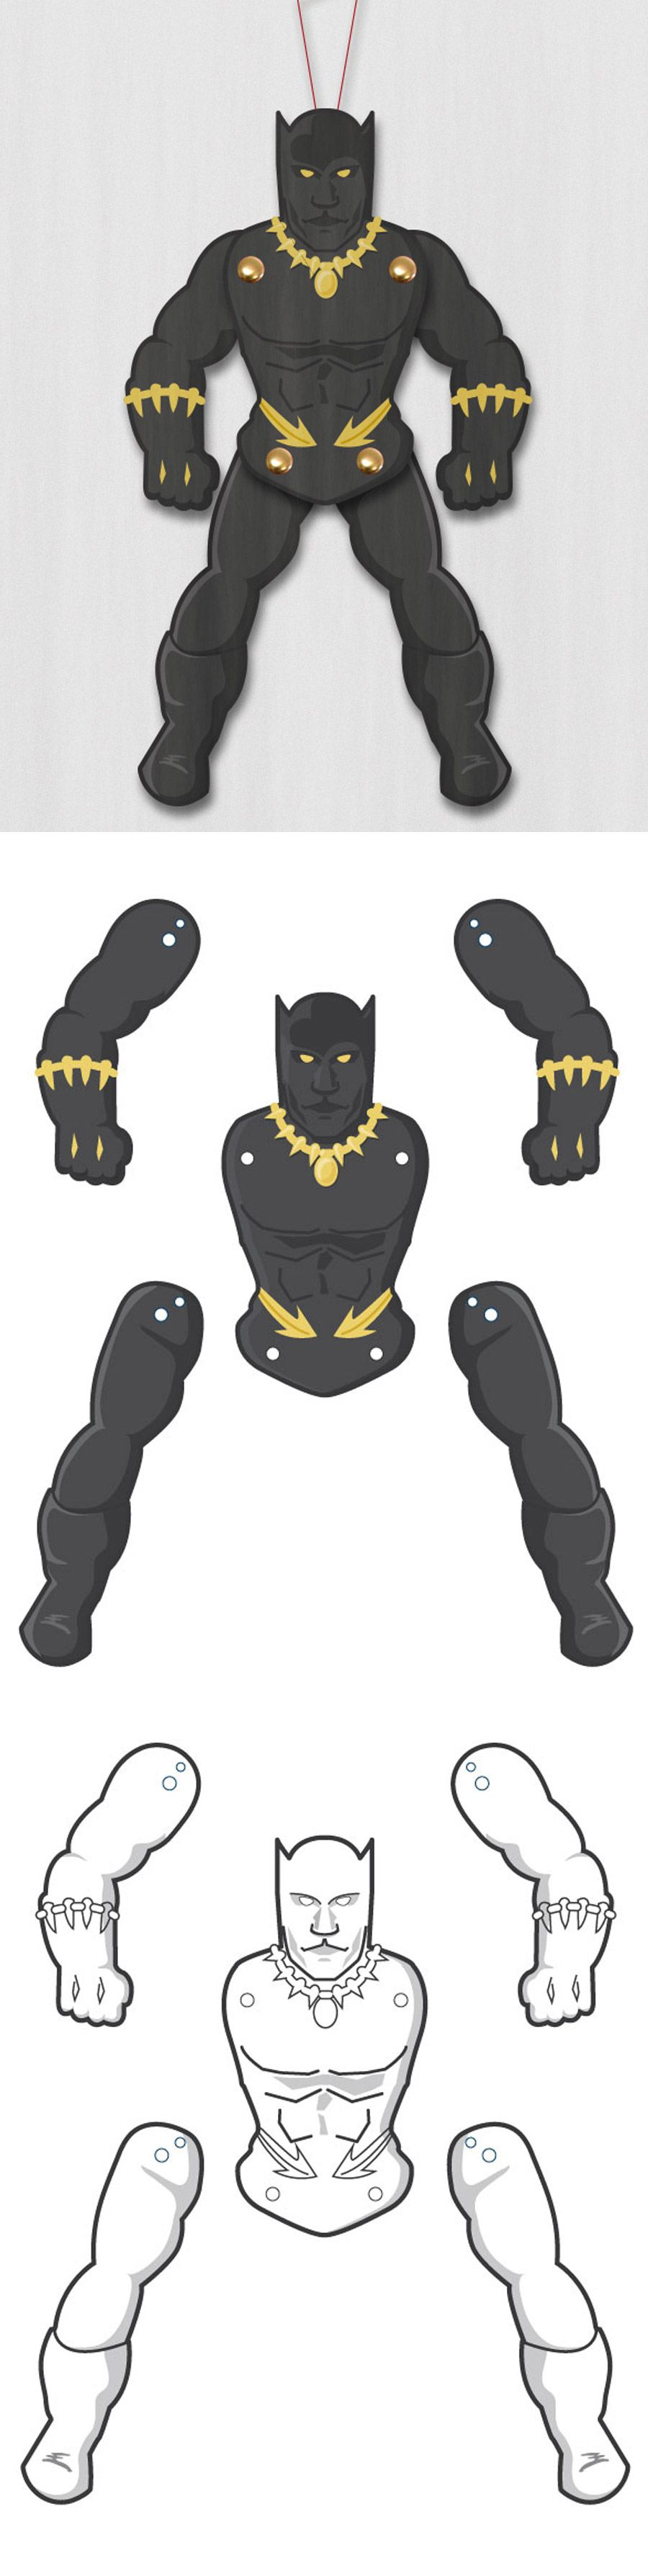 Create your own awesome superhero black panther paper puppet easy paper craft and loads of fun